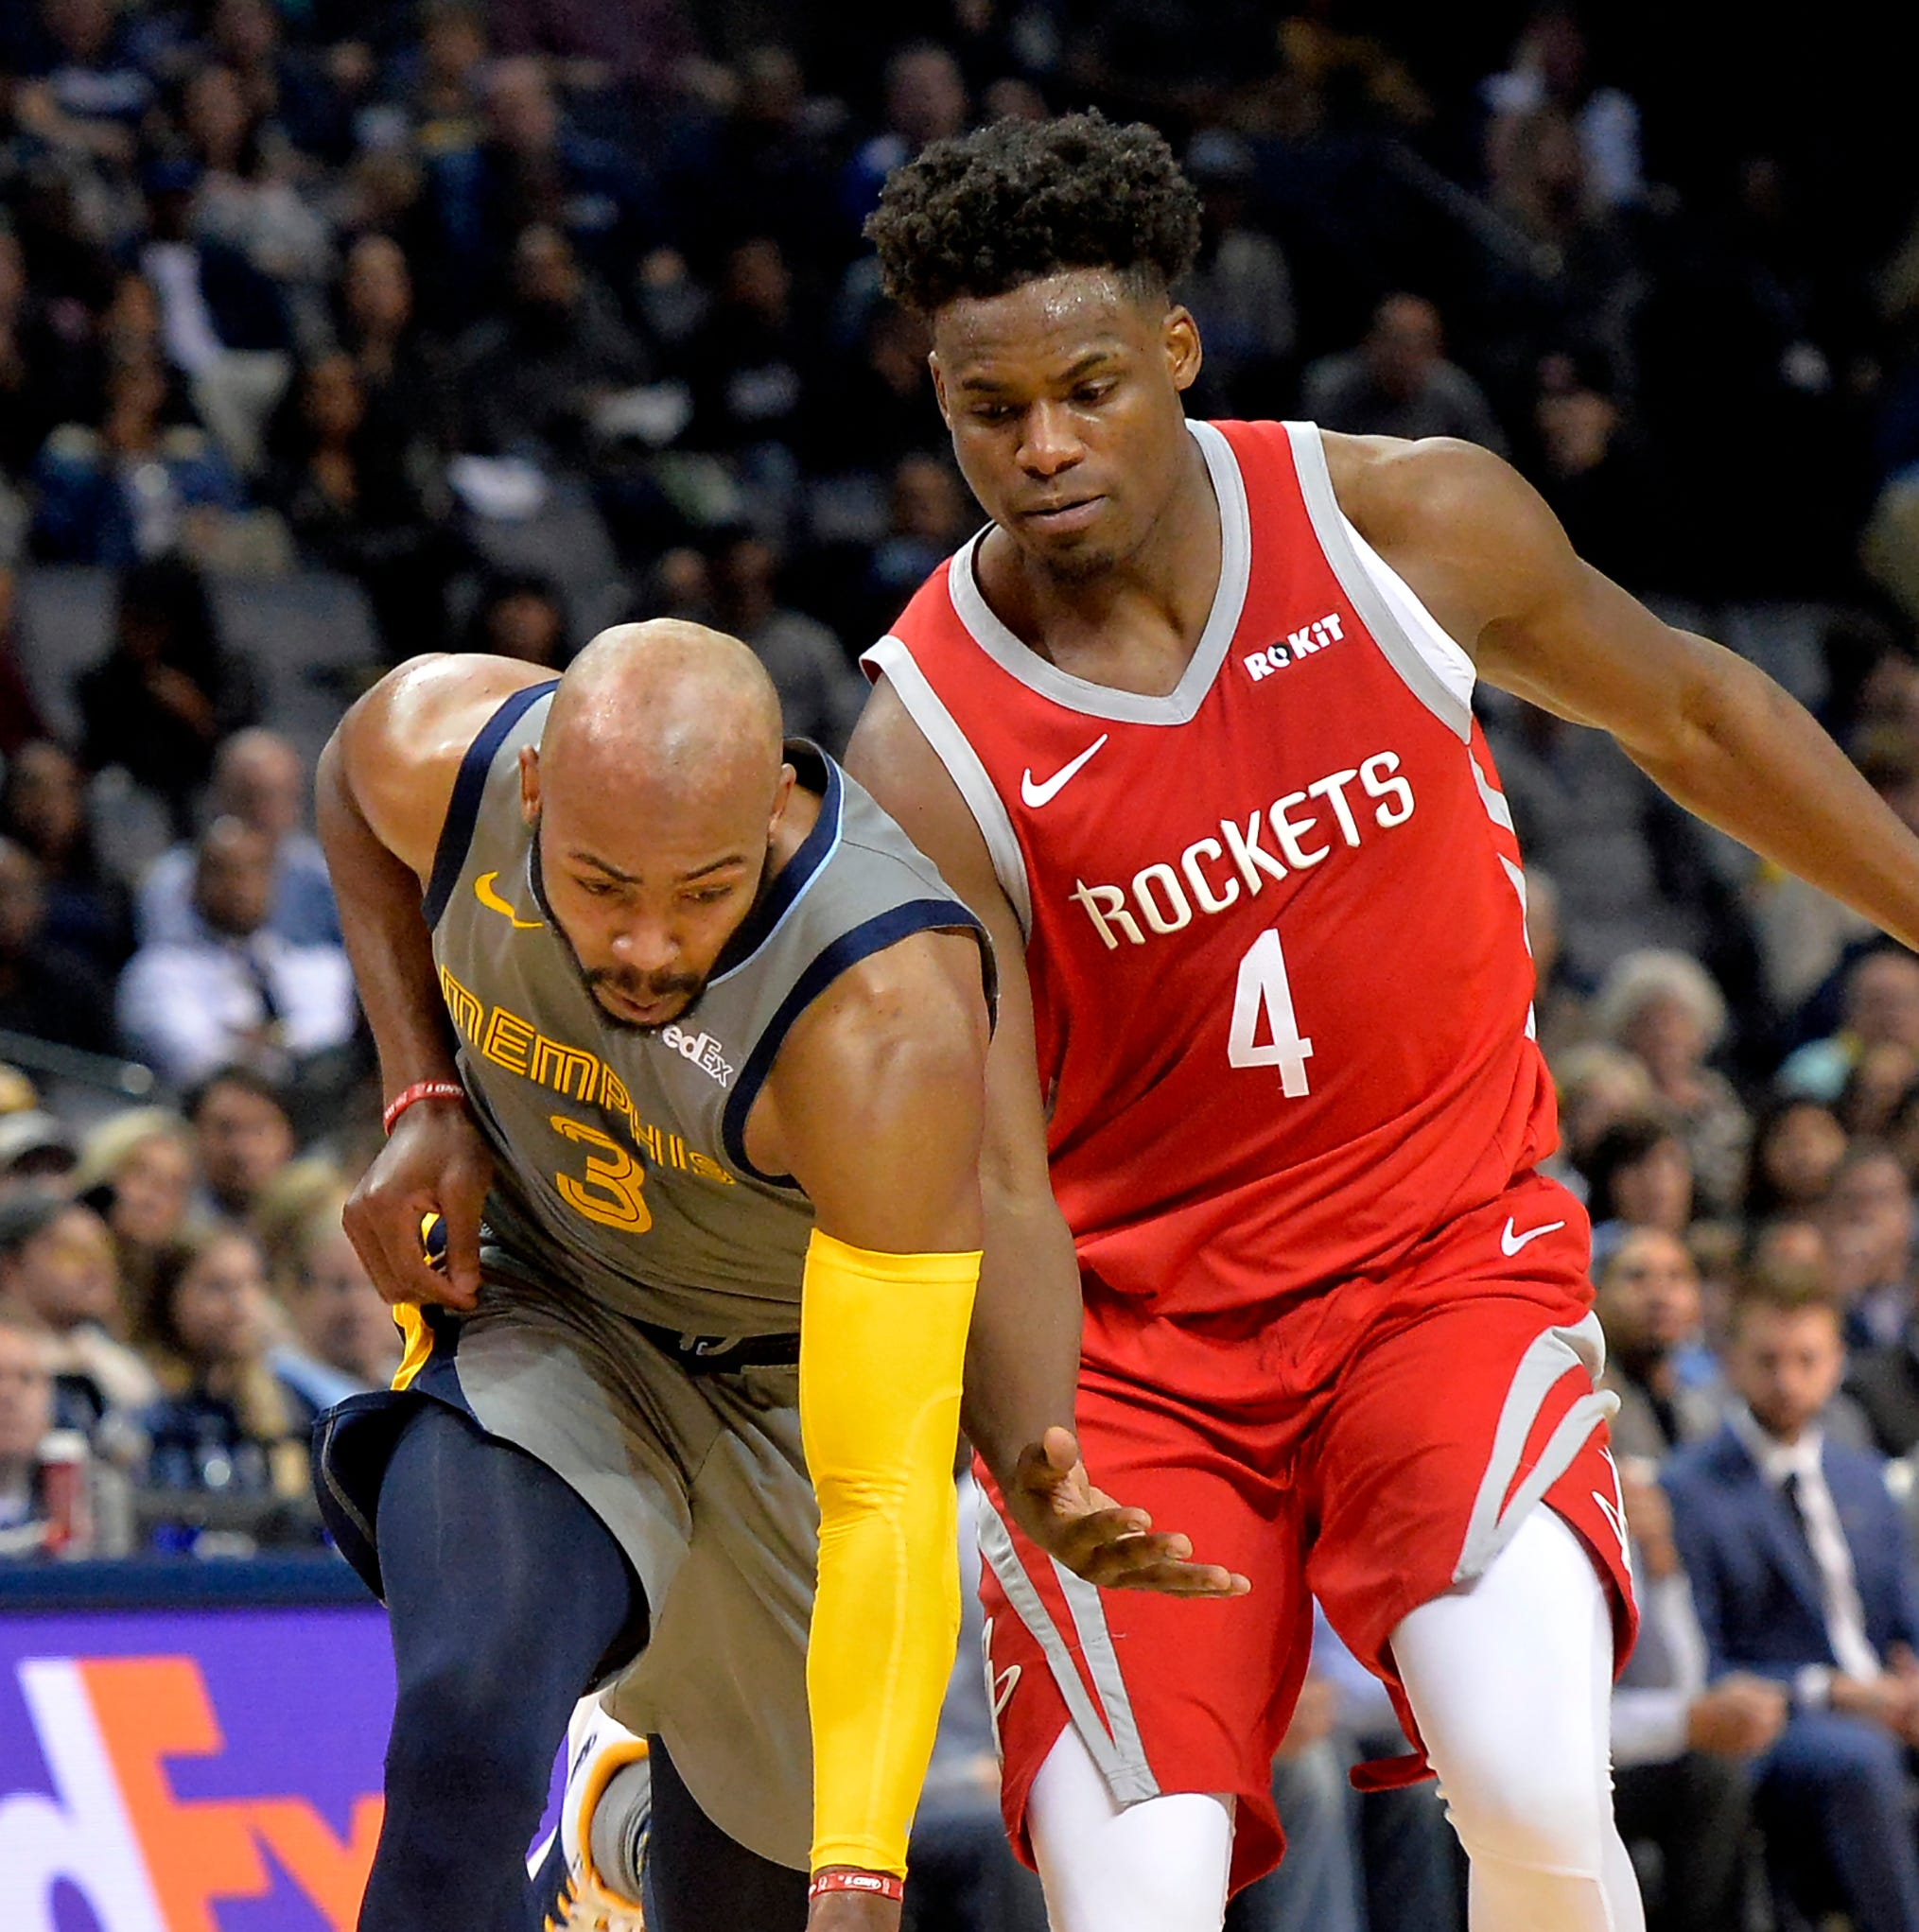 Jevon Carter pesters Chris Paul, James Harden in solid NBA debut for Memphis Grizzlies